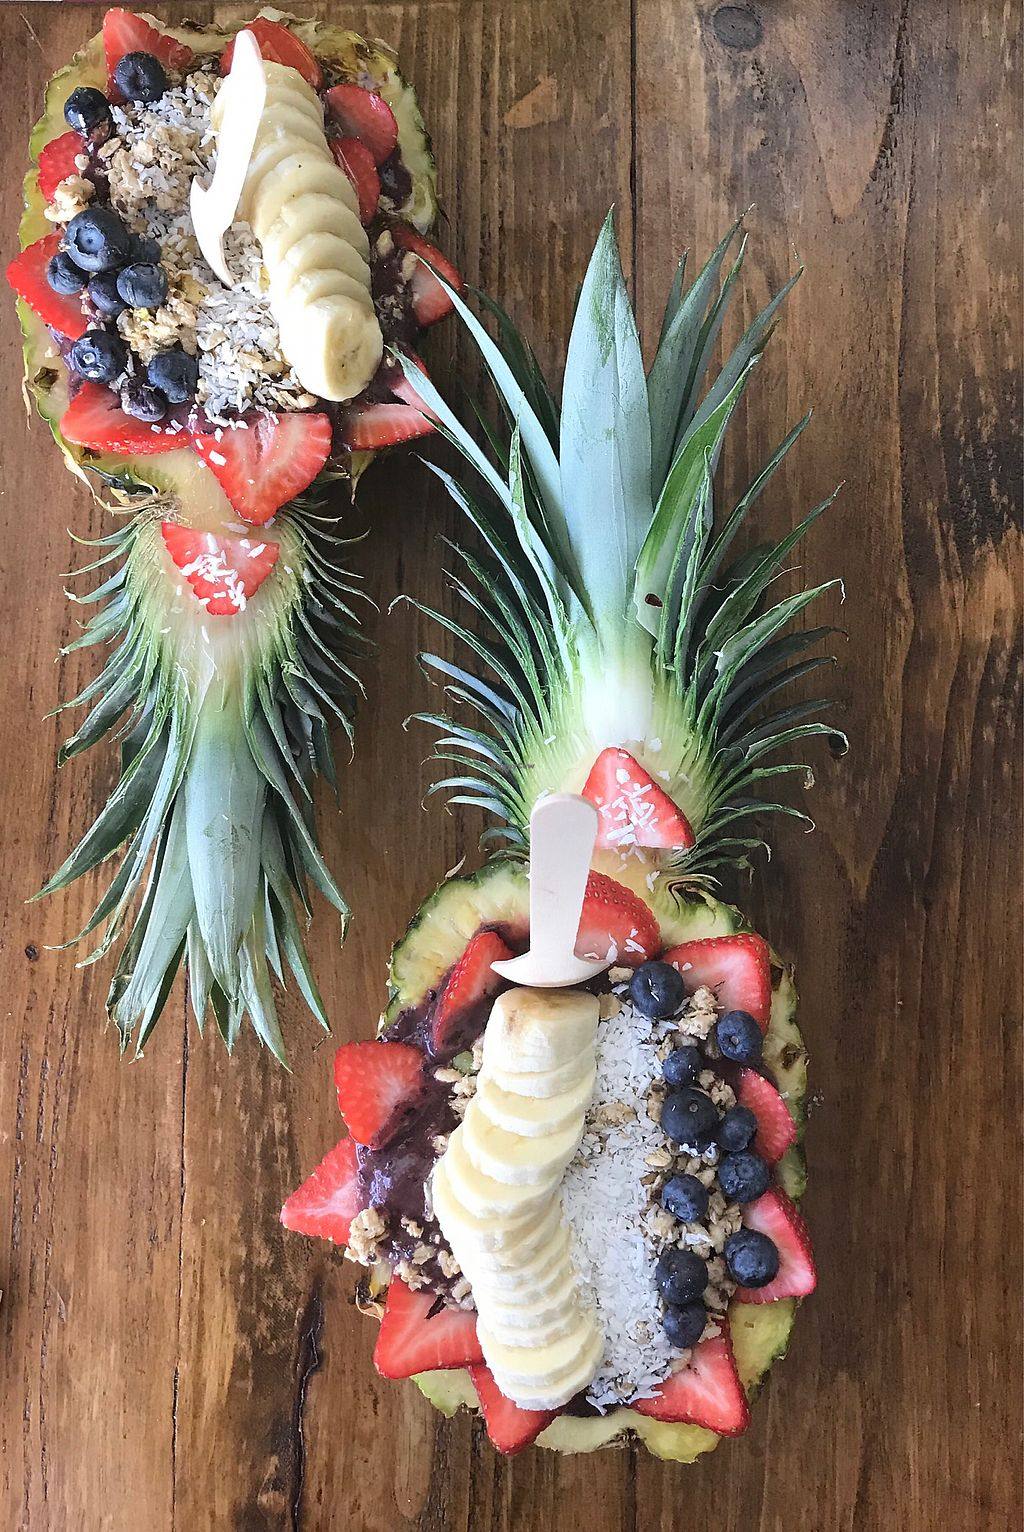 "Photo of Real Food Real People  by <a href=""/members/profile/kherrmann"">kherrmann</a> <br/>Acai bowl in a pineapple! <br/> February 7, 2018  - <a href='/contact/abuse/image/106764/355916'>Report</a>"